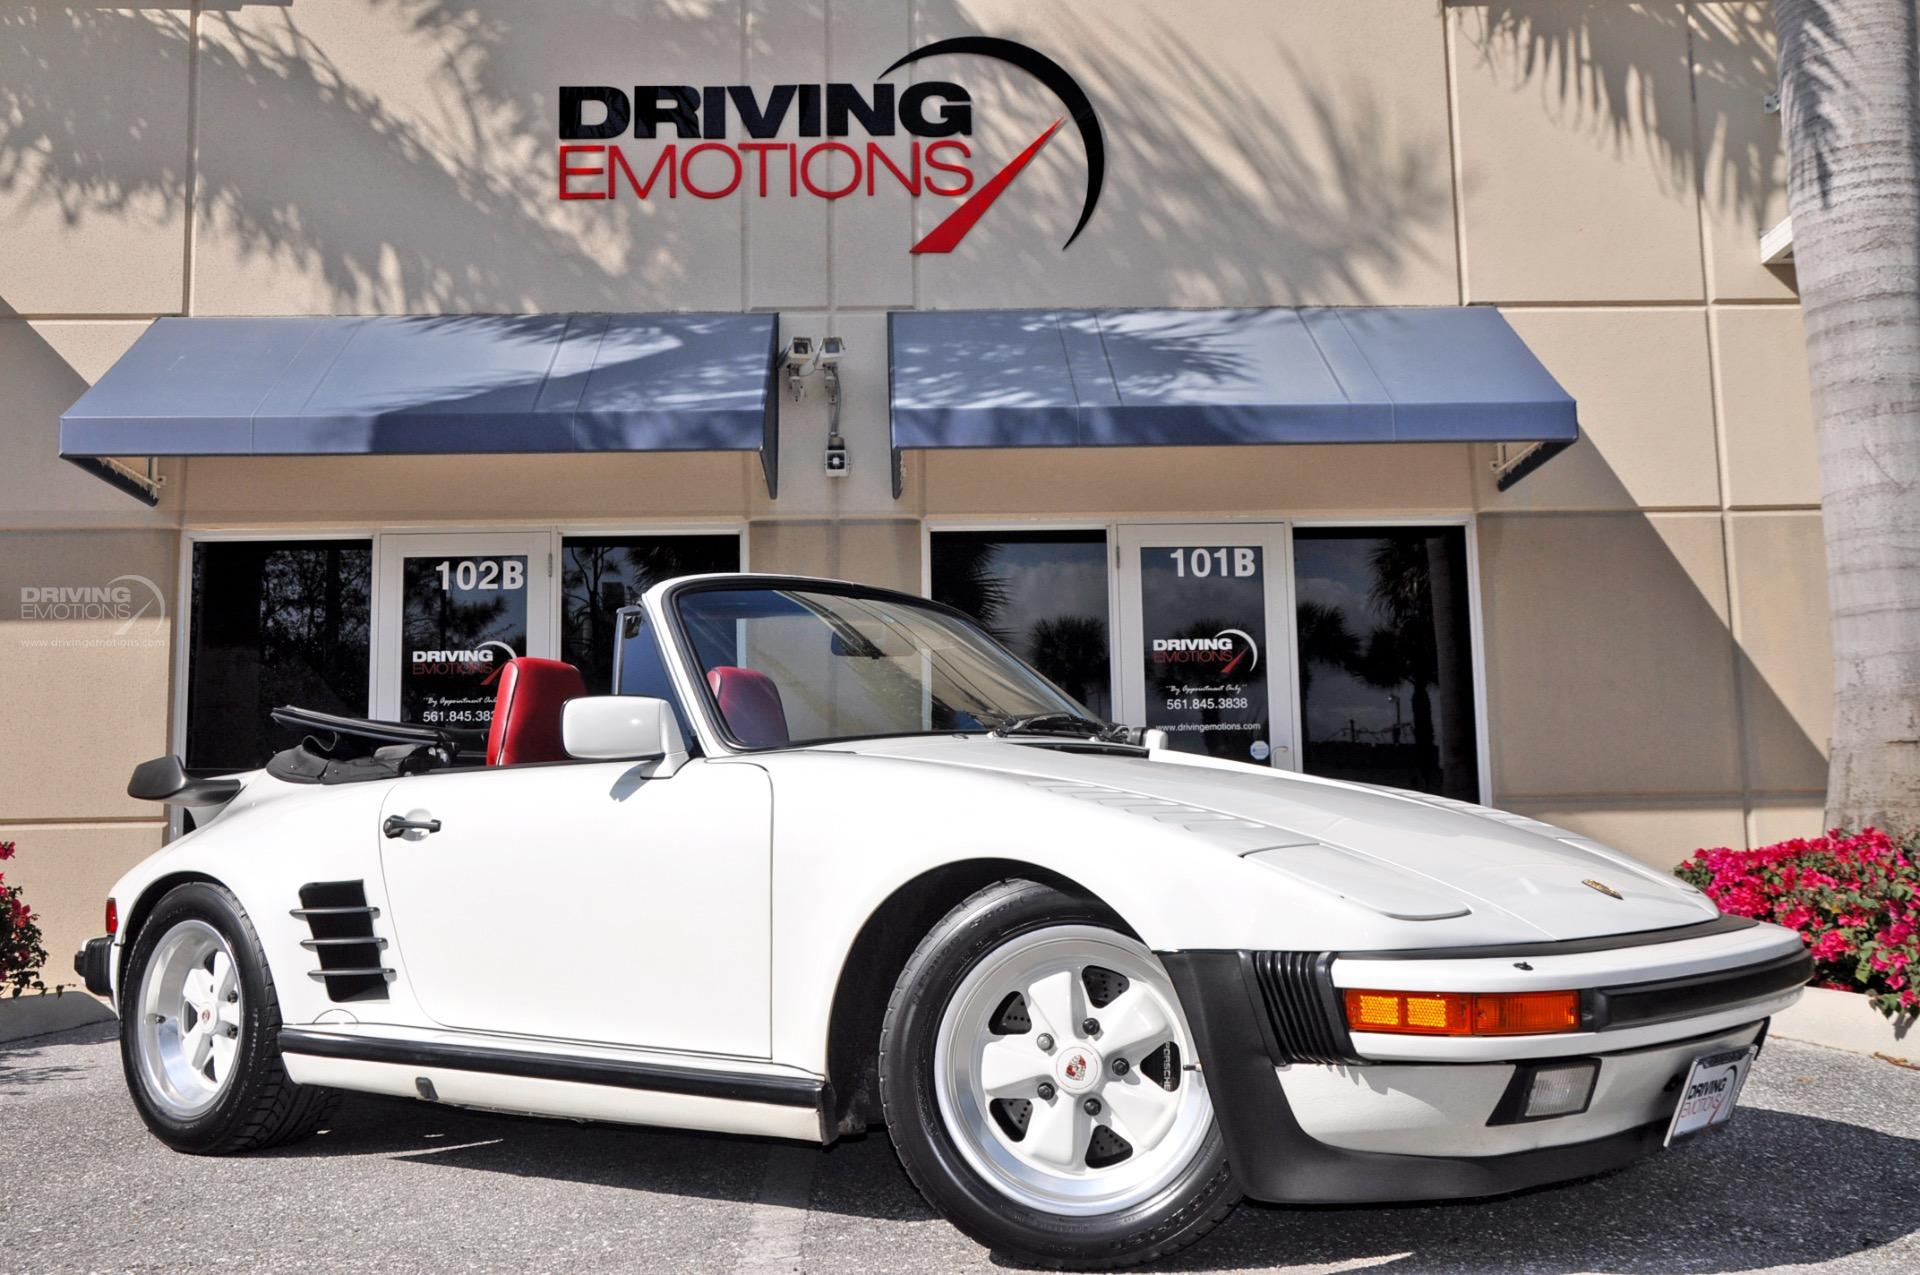 Porsche 930 For Sale >> 1987 Porsche 911 930 Turbo Cabriolet Slant Nose Carrera Turbo Slant Nose Stock # 5751 for sale ...